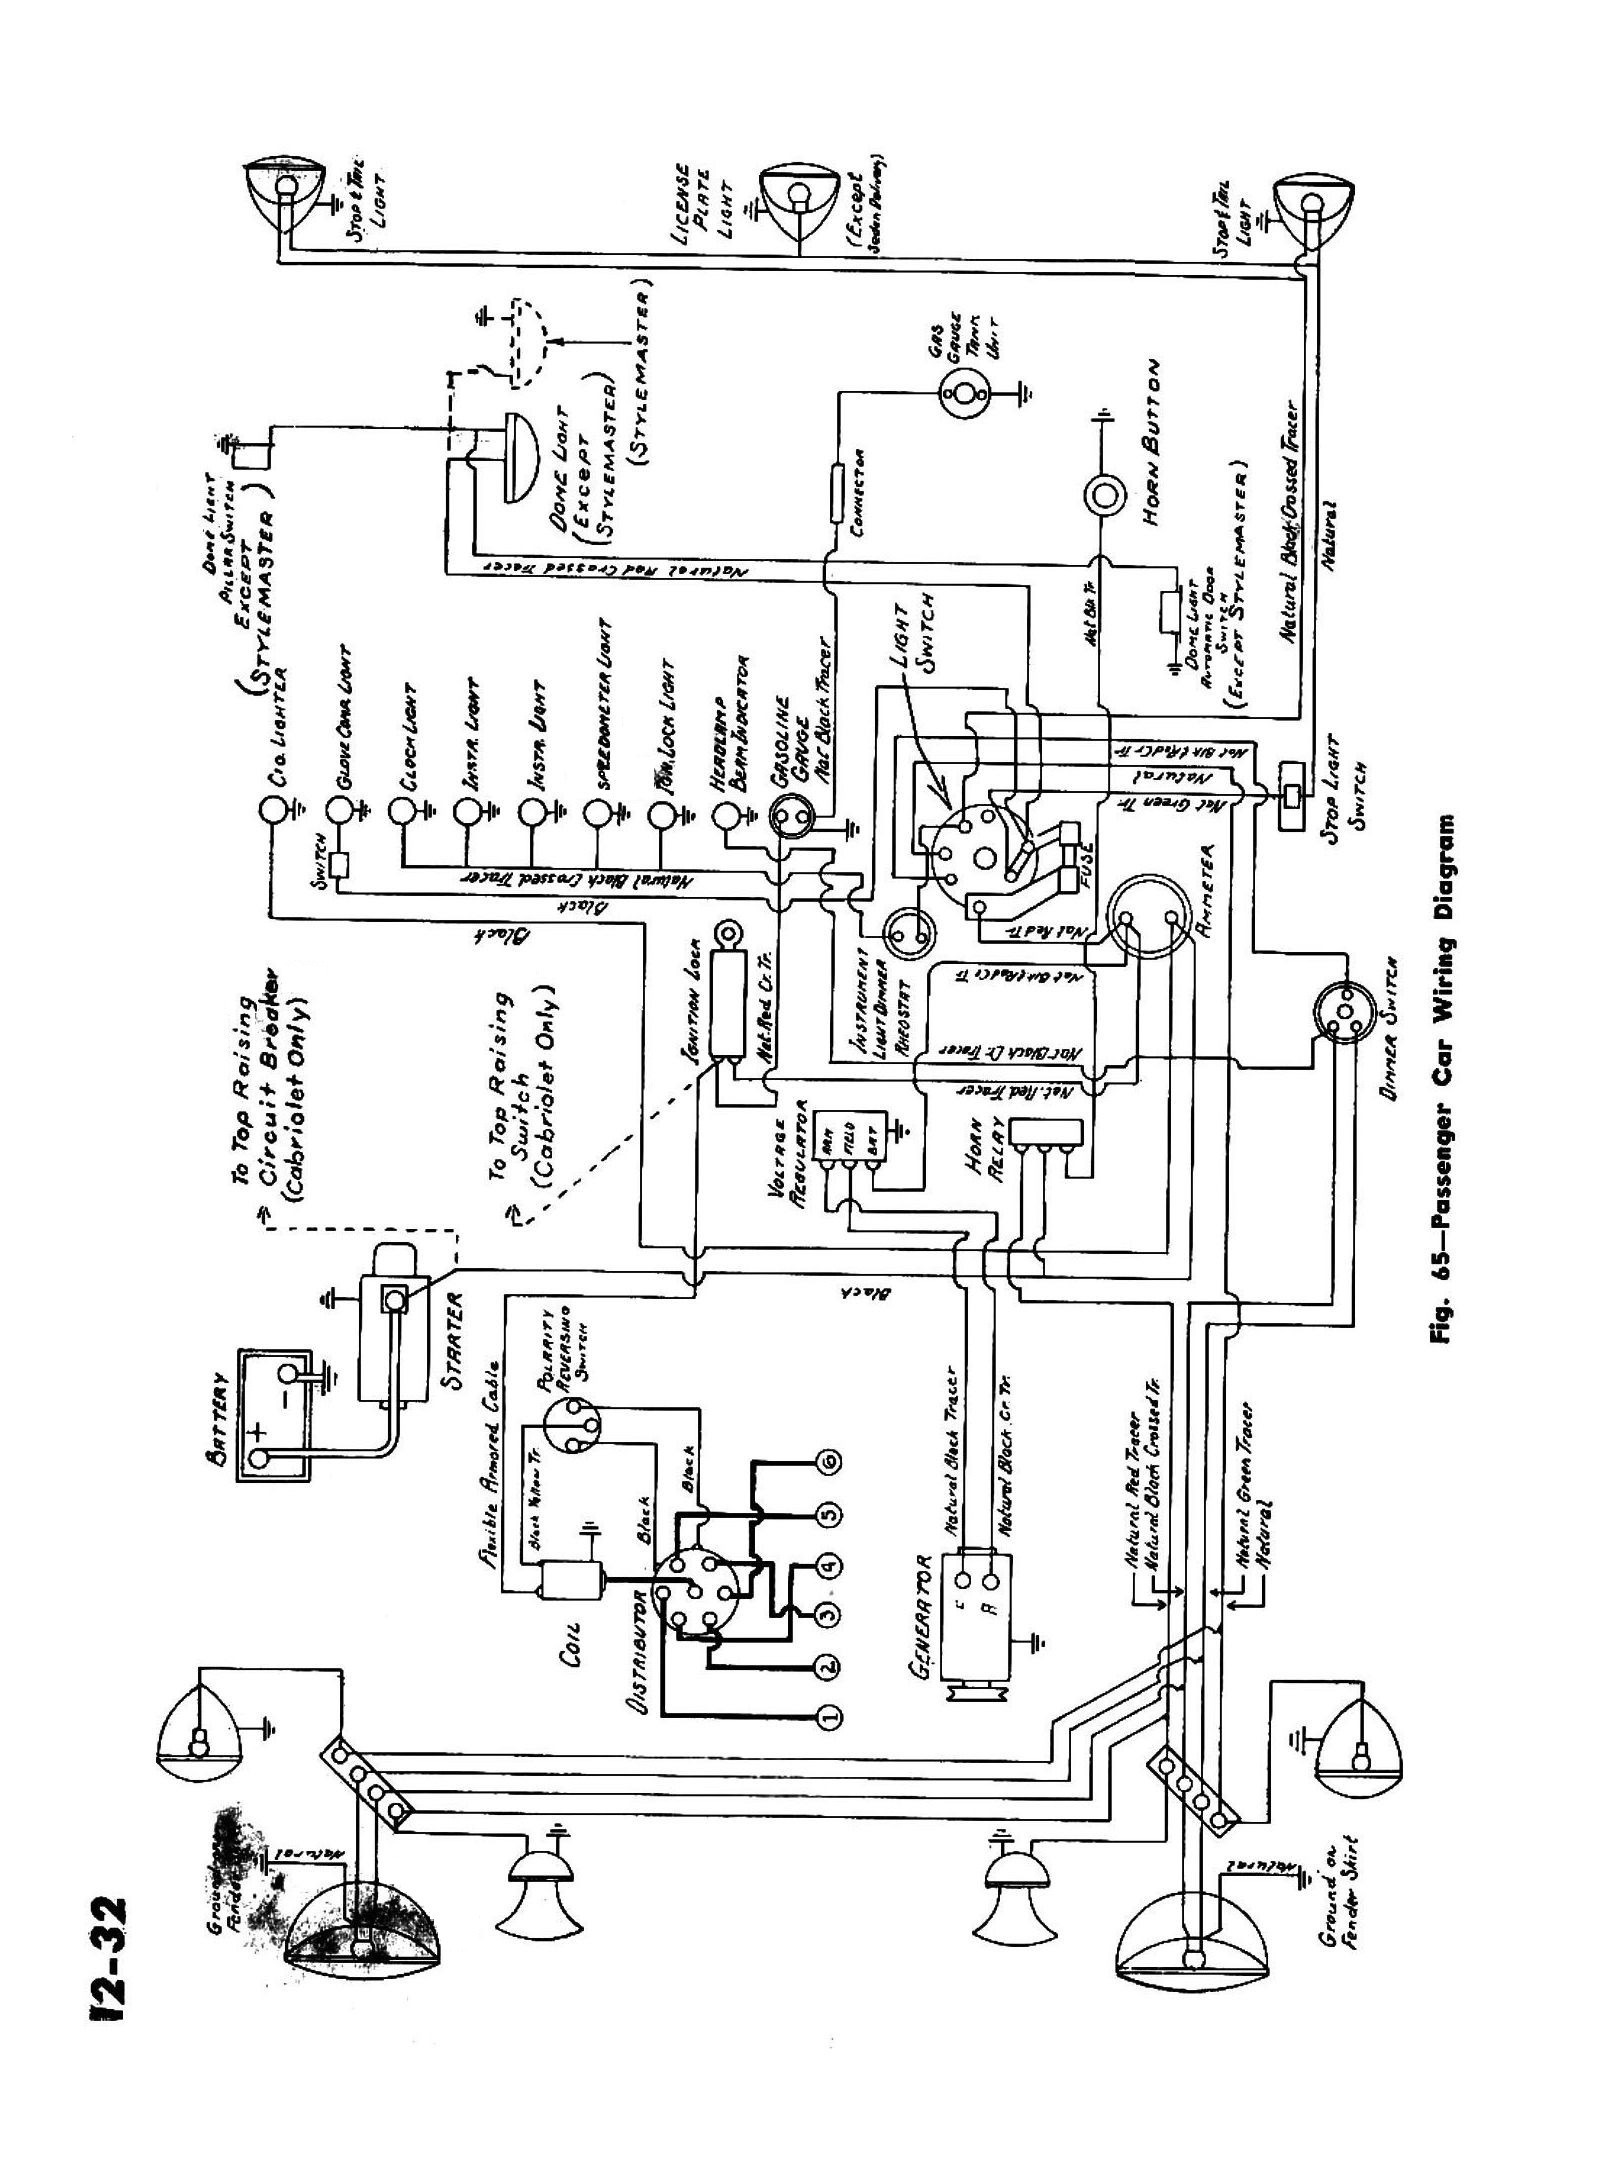 hight resolution of car wire diagram wiring diagram query car wiring diagram symbols automotive wire diagram wiring diagram query